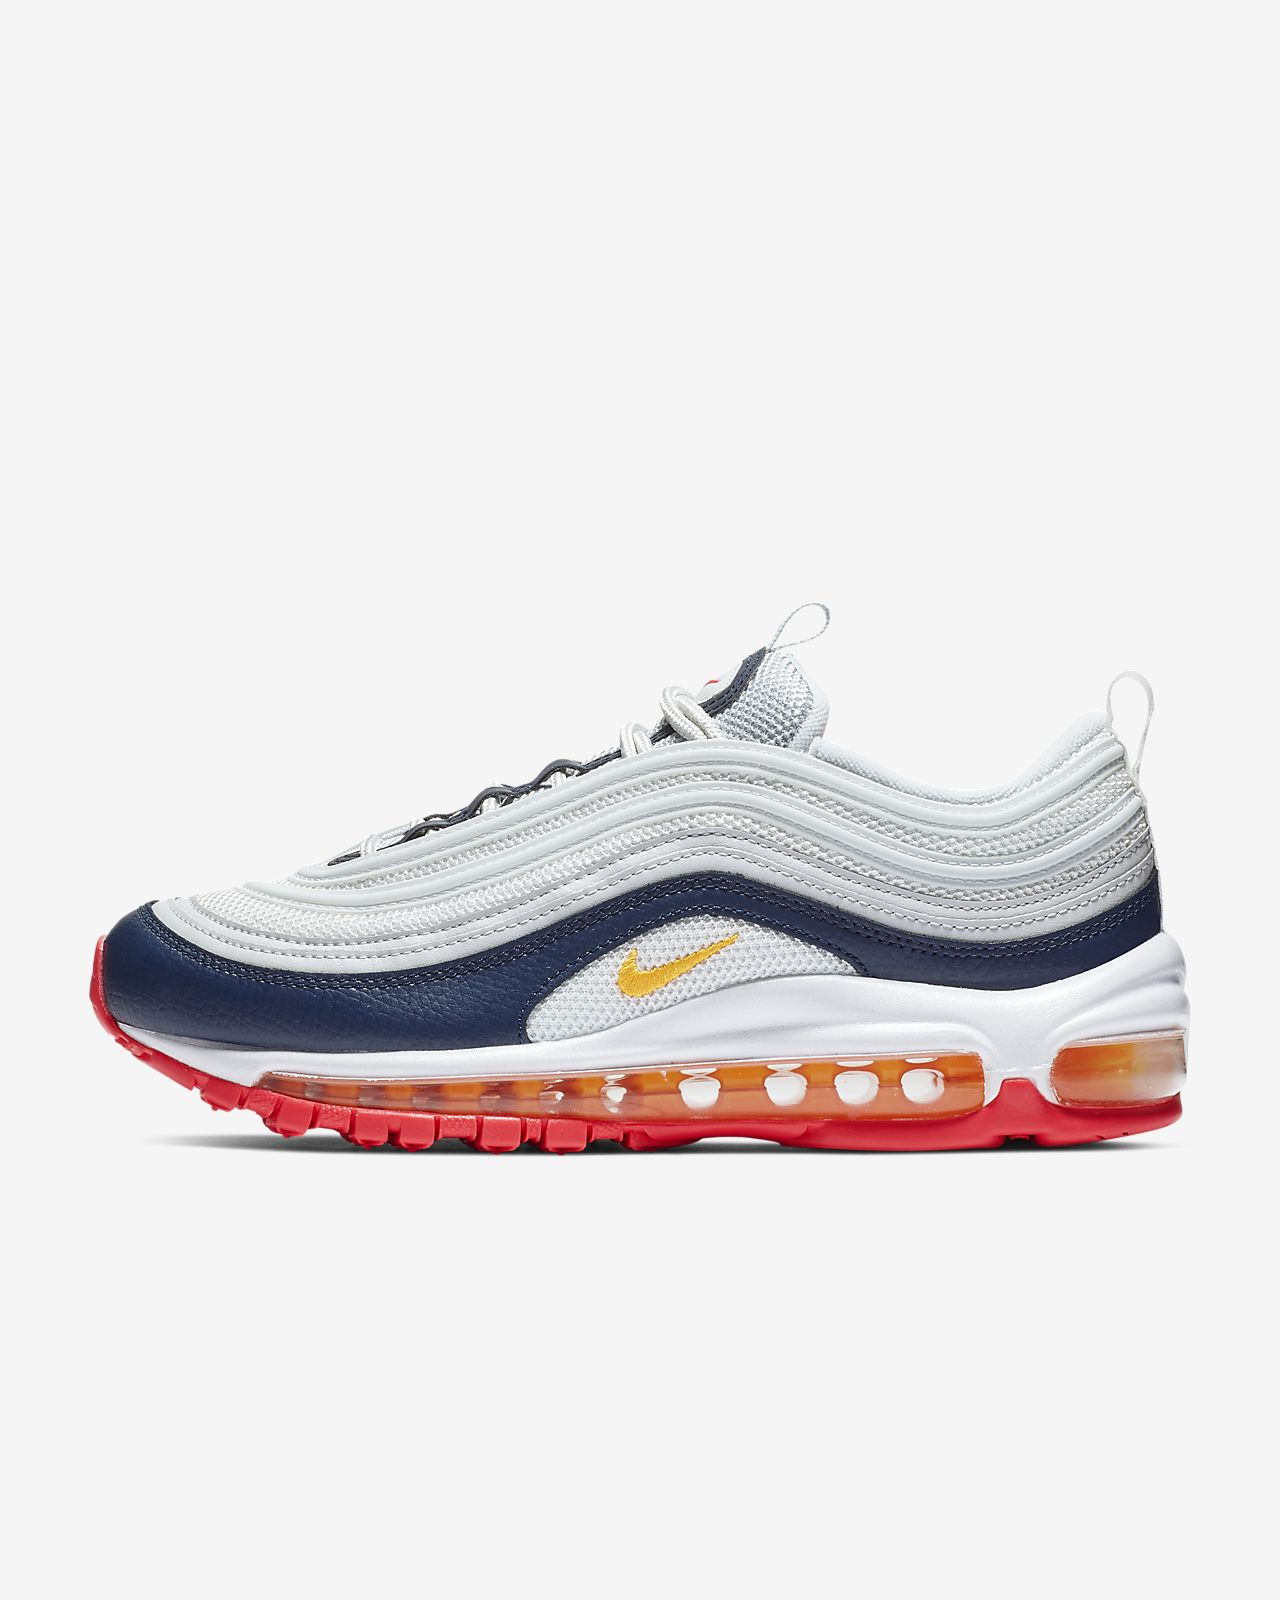 dce0d436c4 Nike Air Max 97 Premium Women's Shoe. Nike.com NO